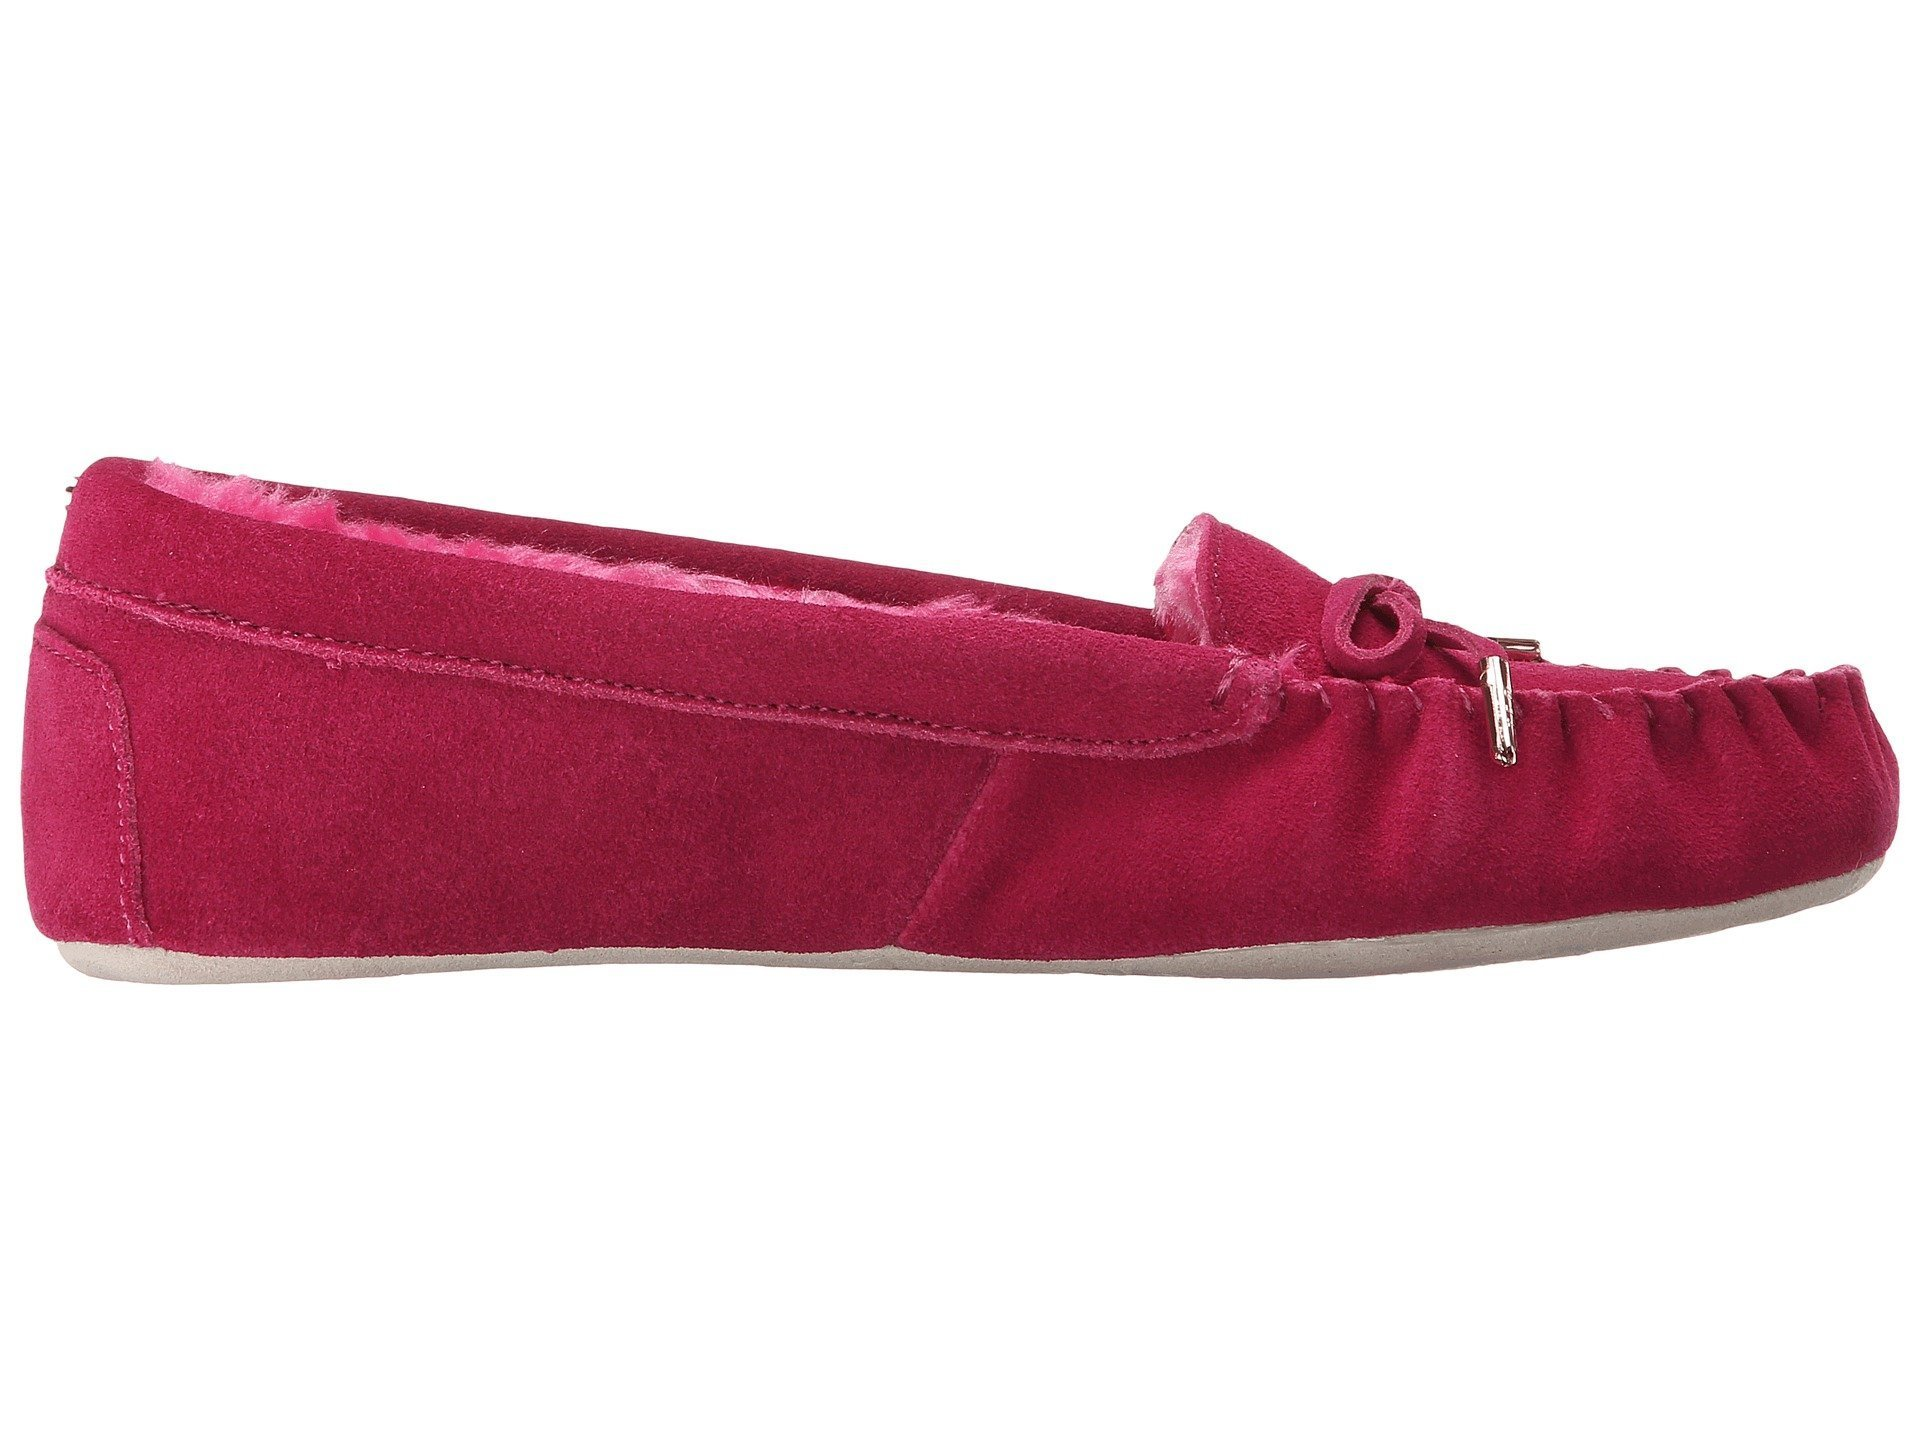 Ted Baker ★素敵なローファー★Pink Suede★ラスト1★送料無料